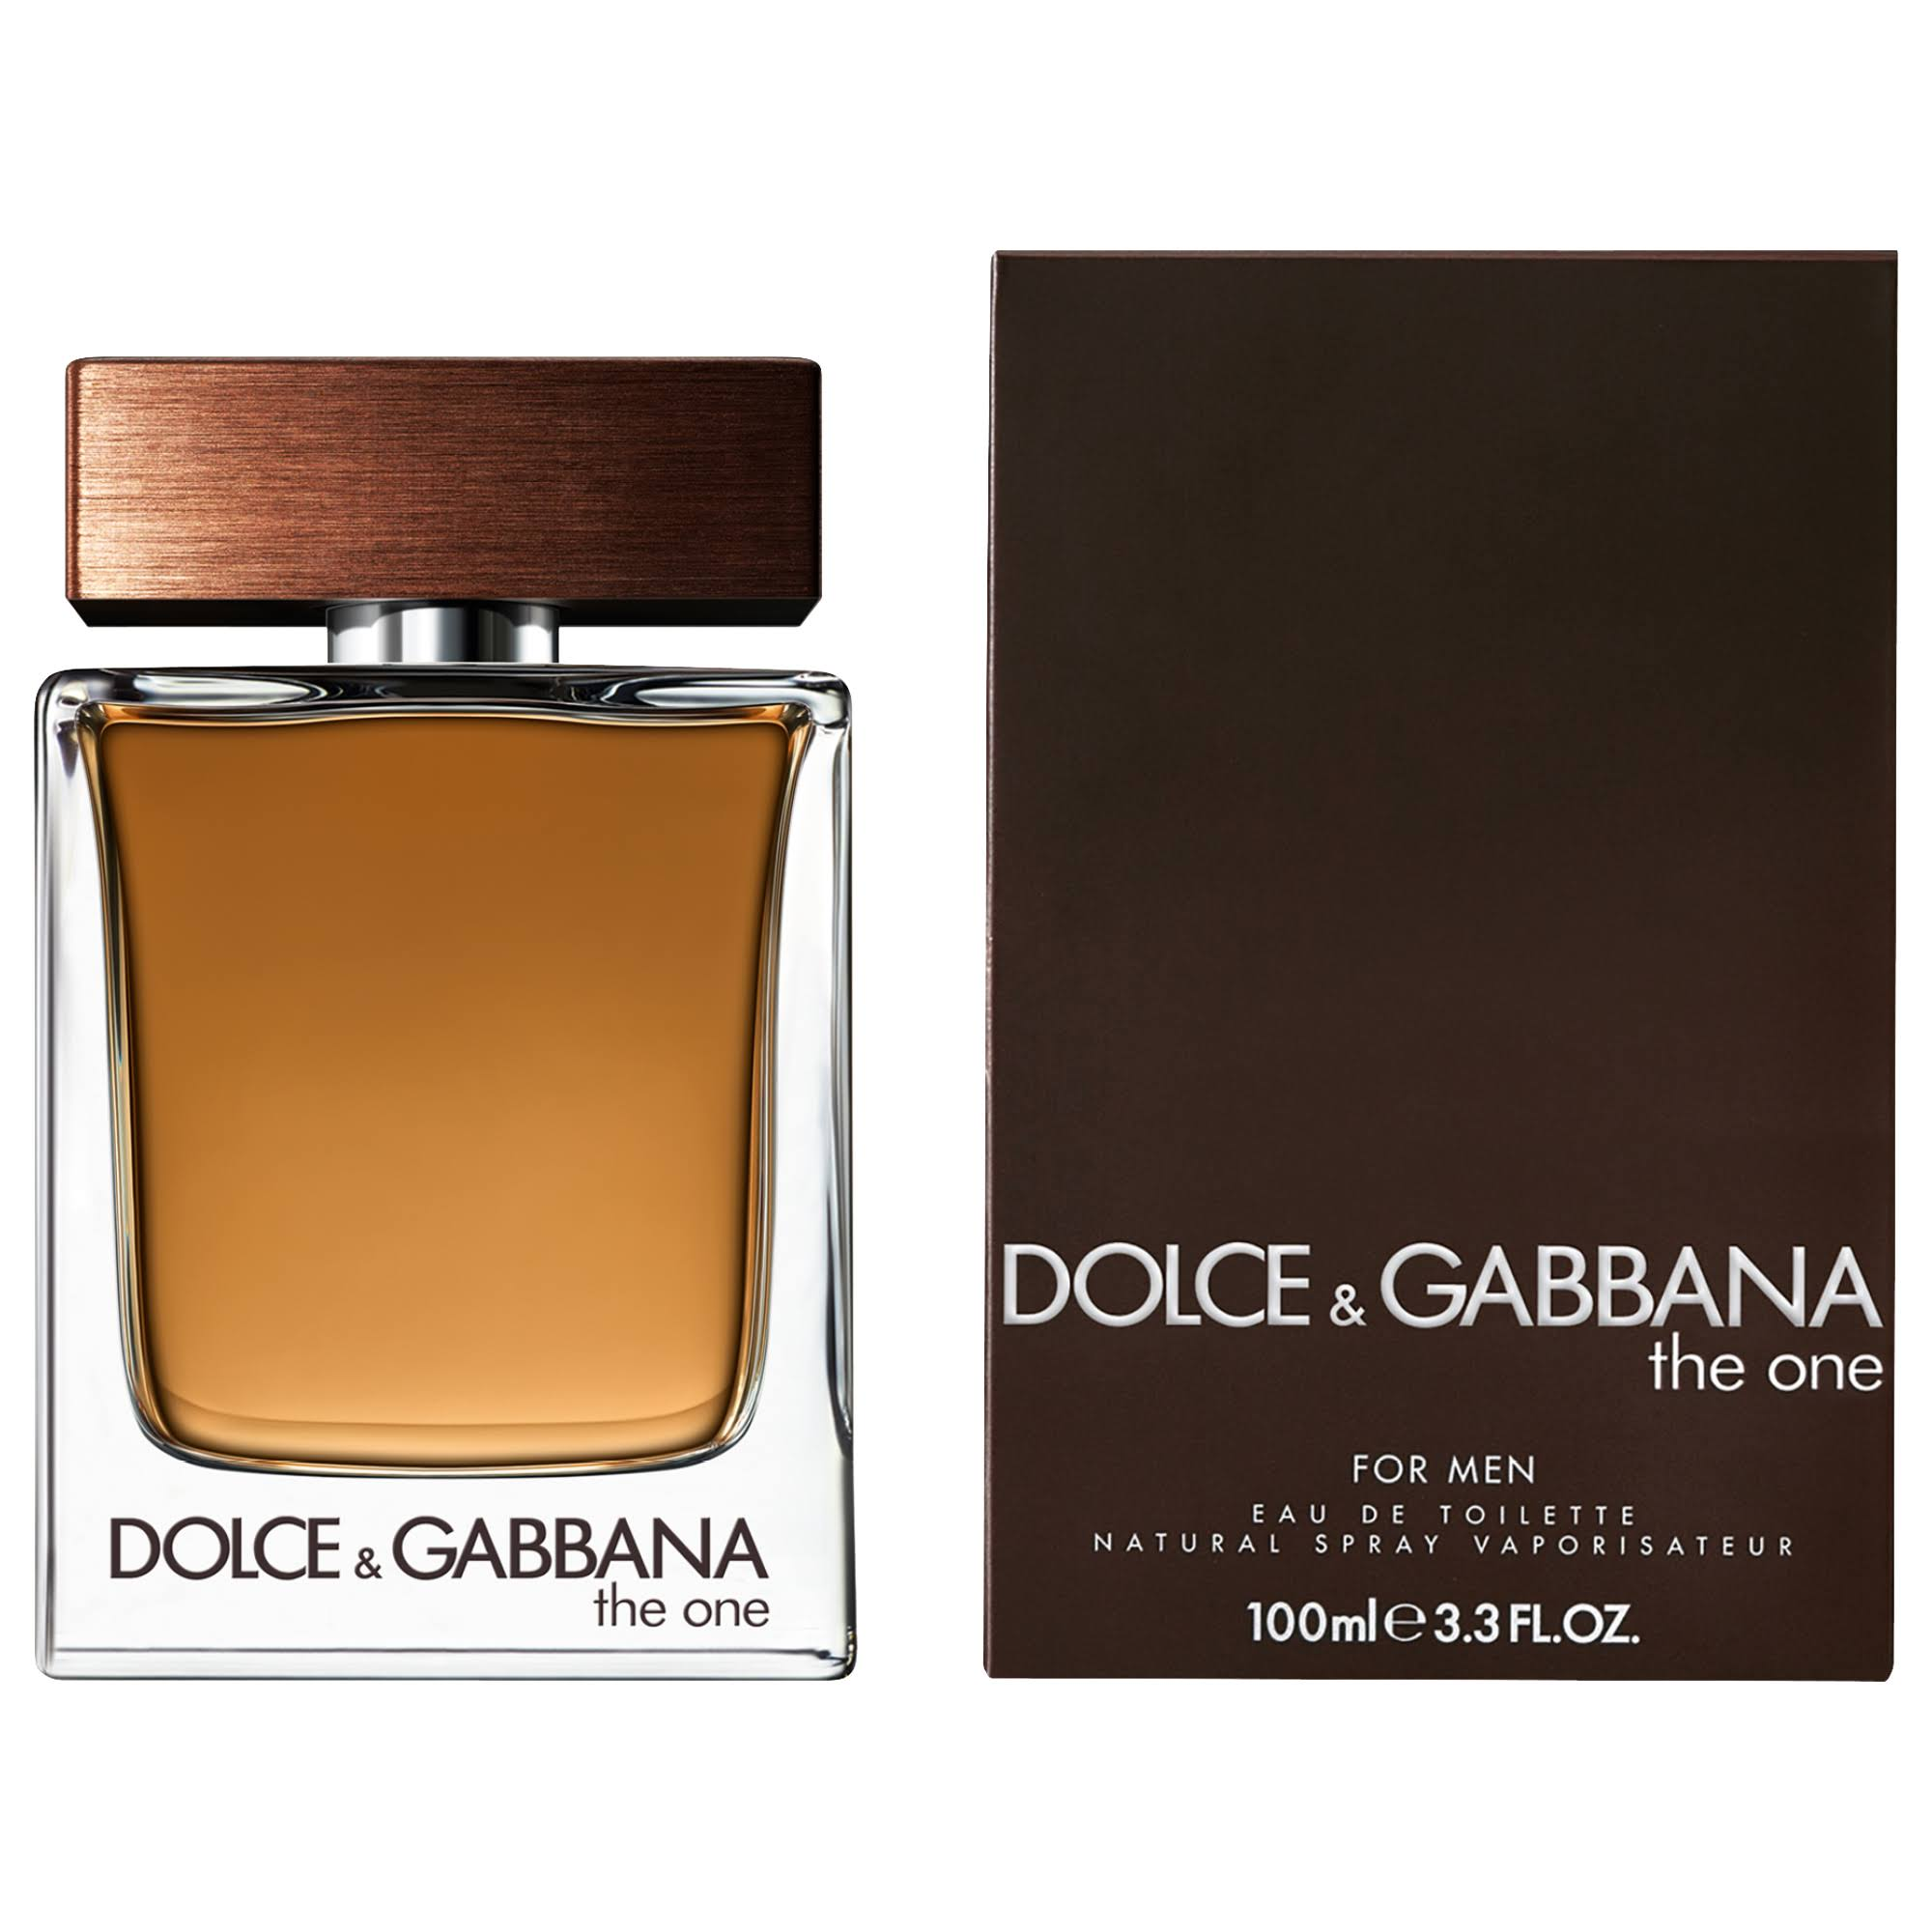 Dolce & Gabbana The One Men's Eau de Toilette Spray - 100ml